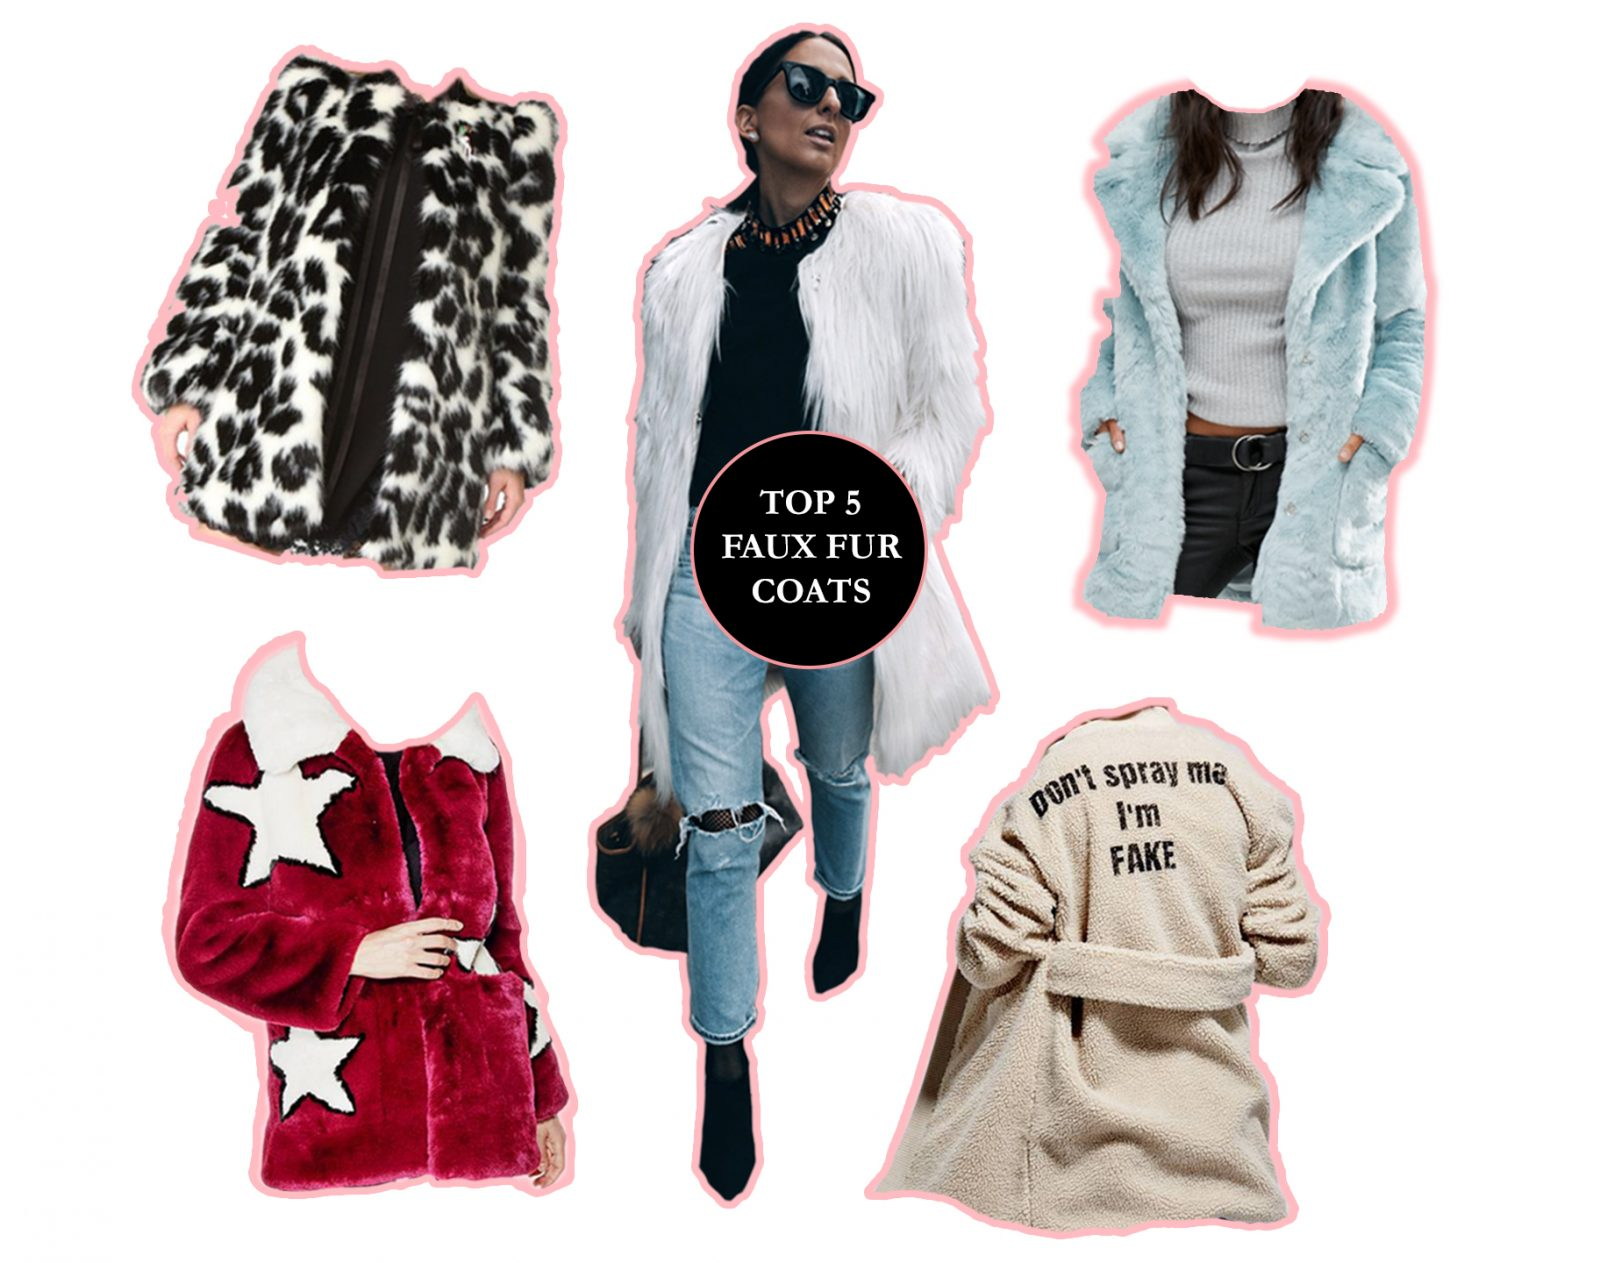 My Favourite Faux Fur Coats!